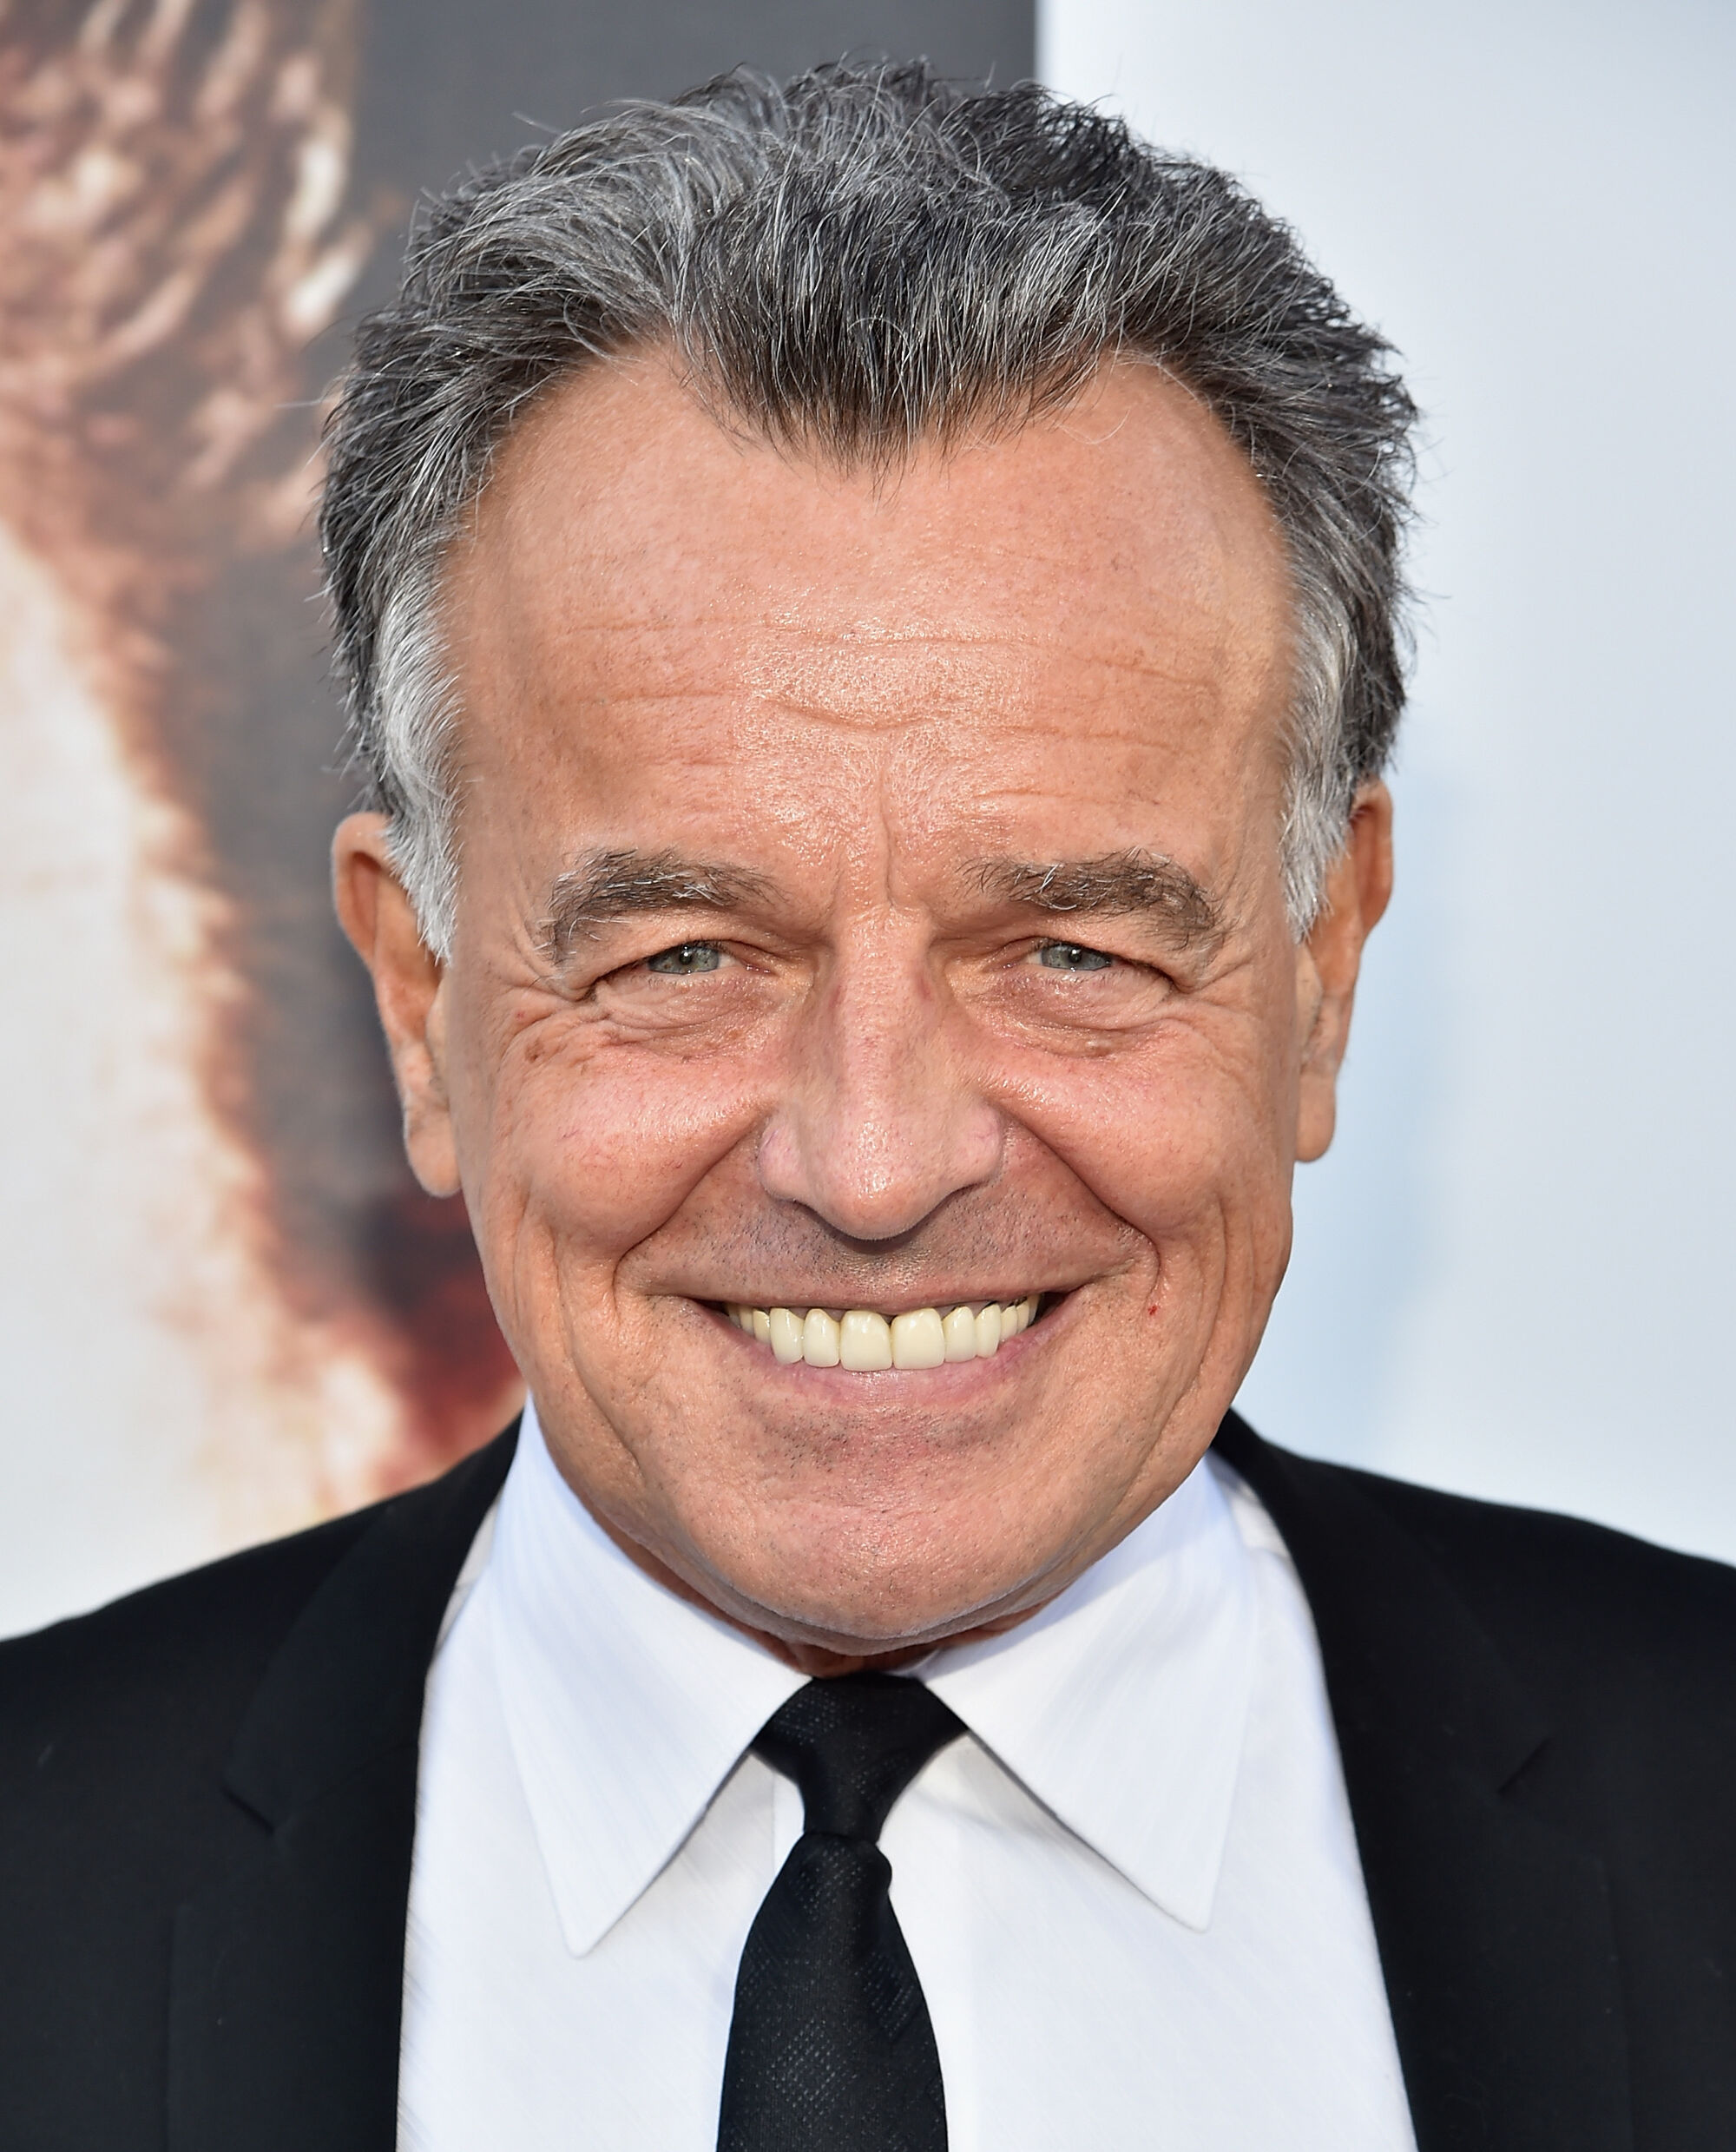 Ray wise orgy pics 21